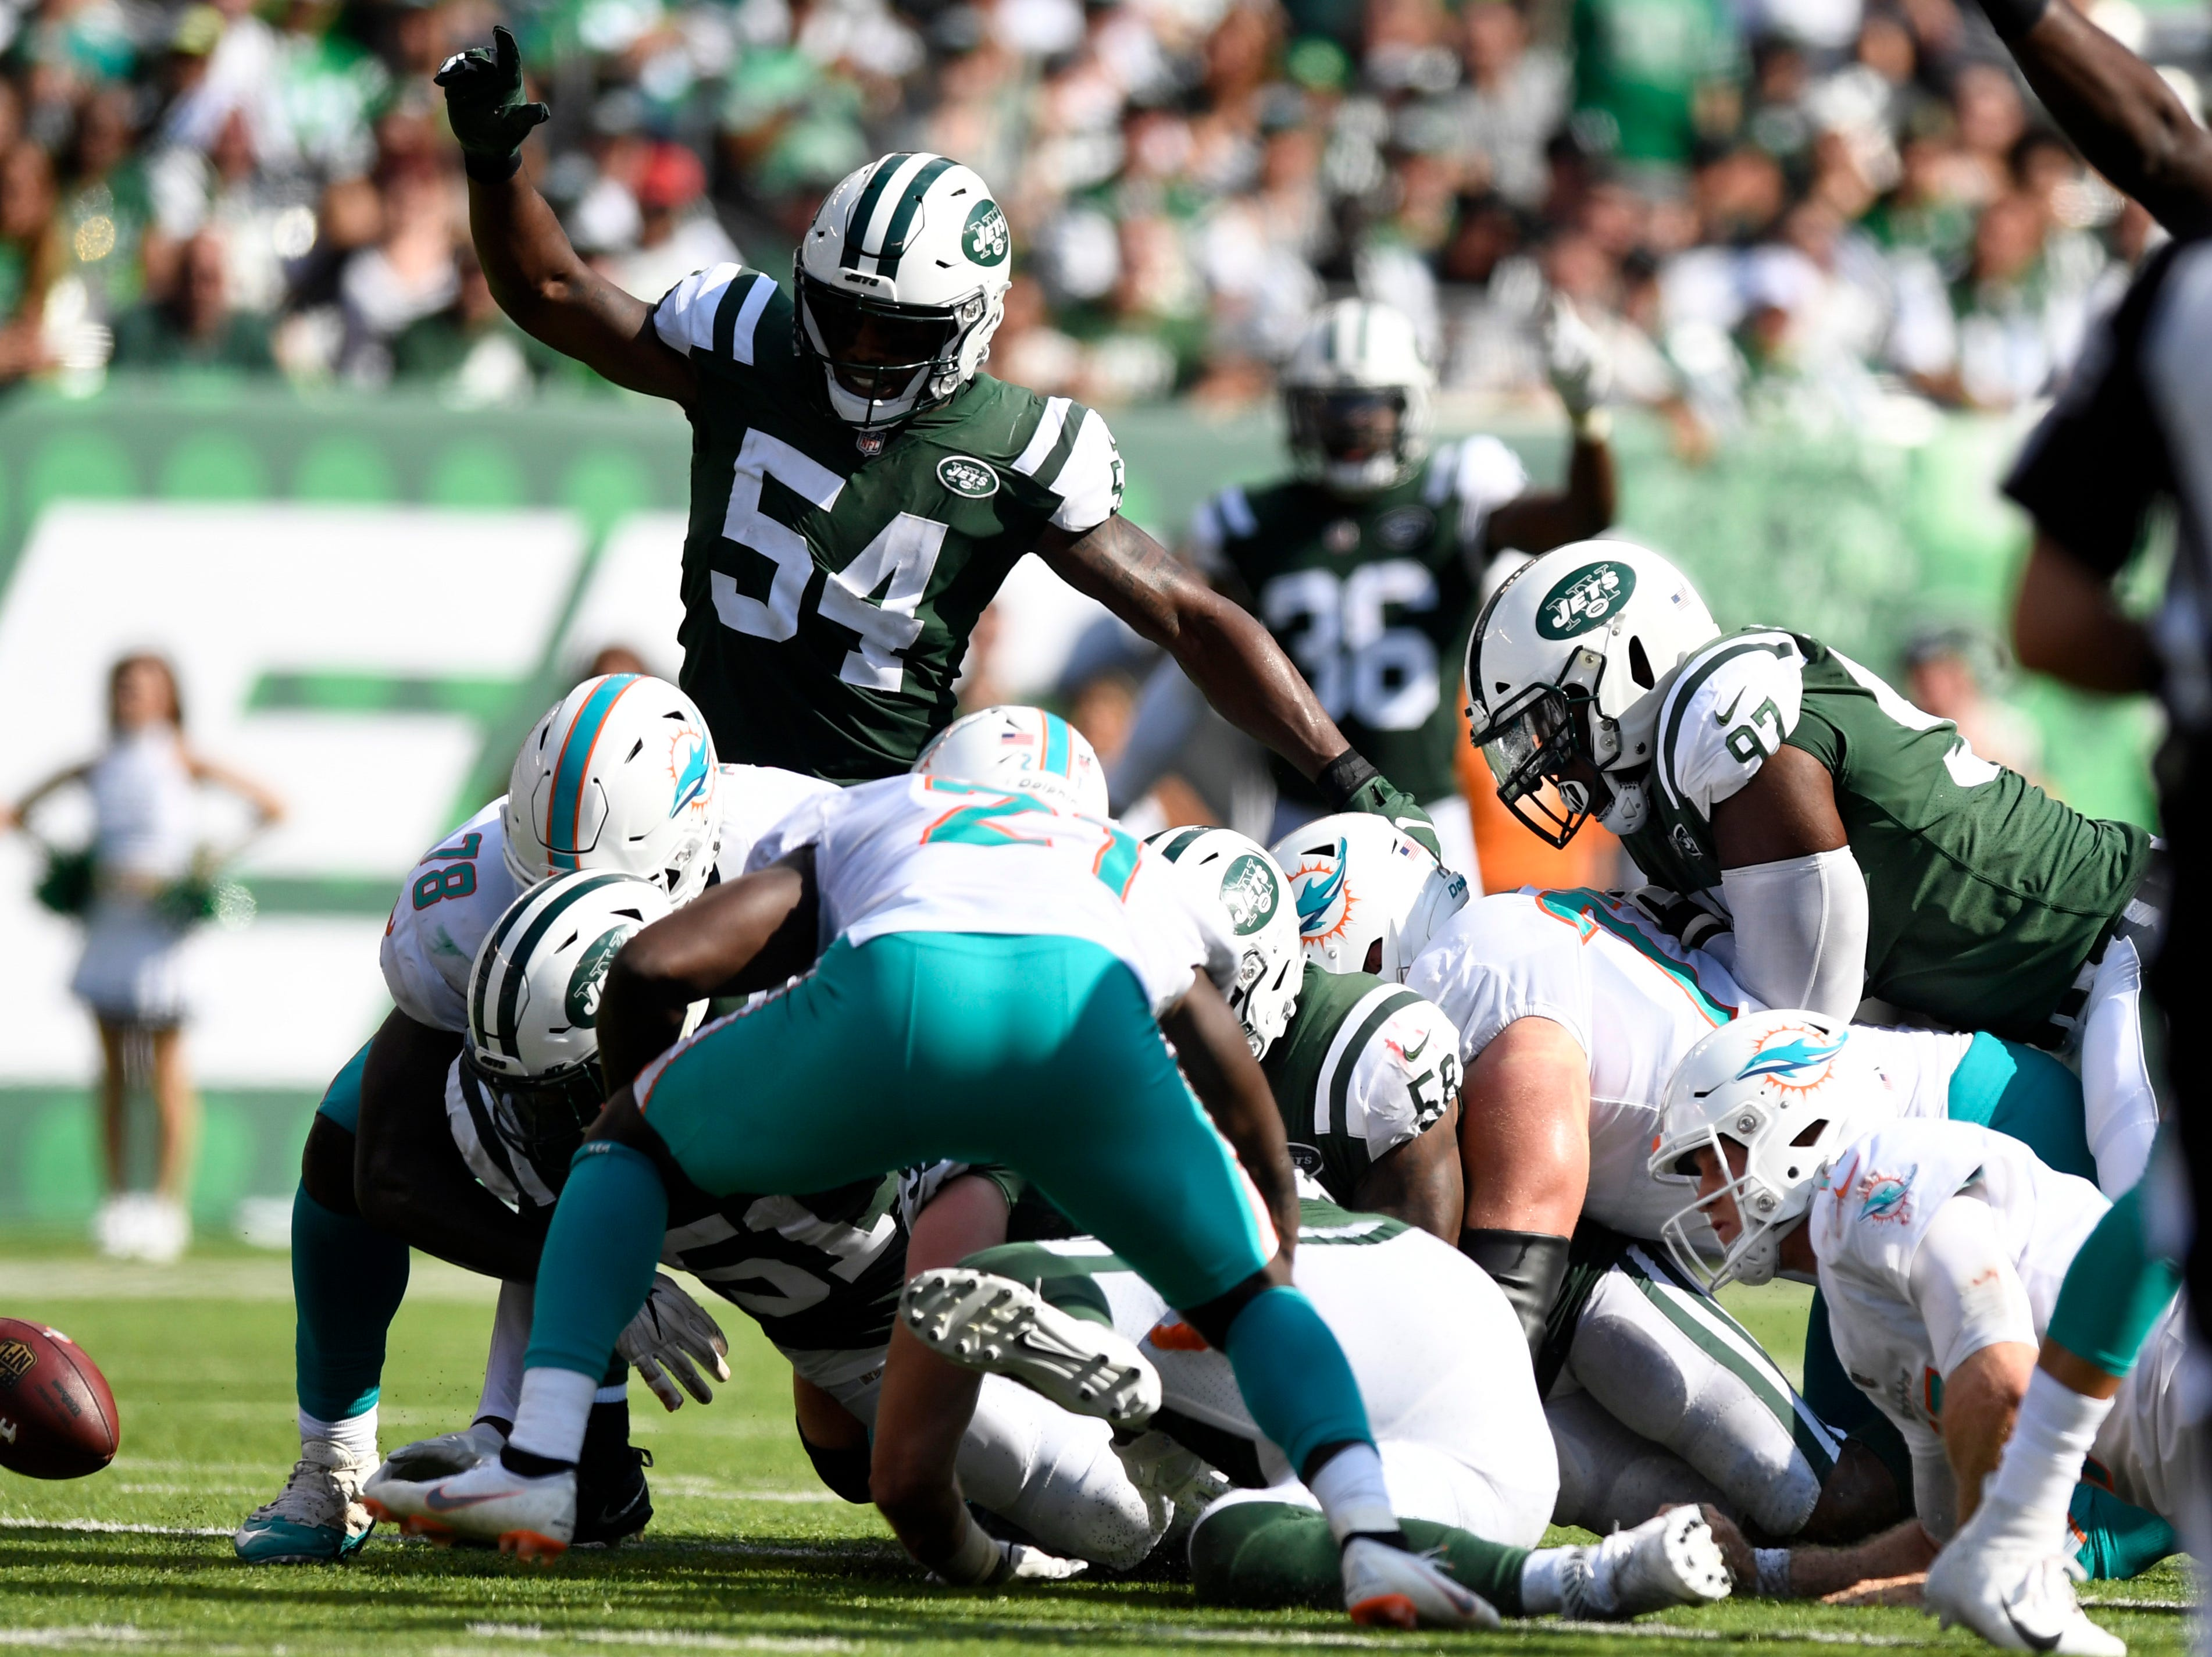 The New York Jets defense force a Miami fumble in Week 2 at MetLife Stadium in East Rutherford, NJ on Sunday, September 16, 2018.